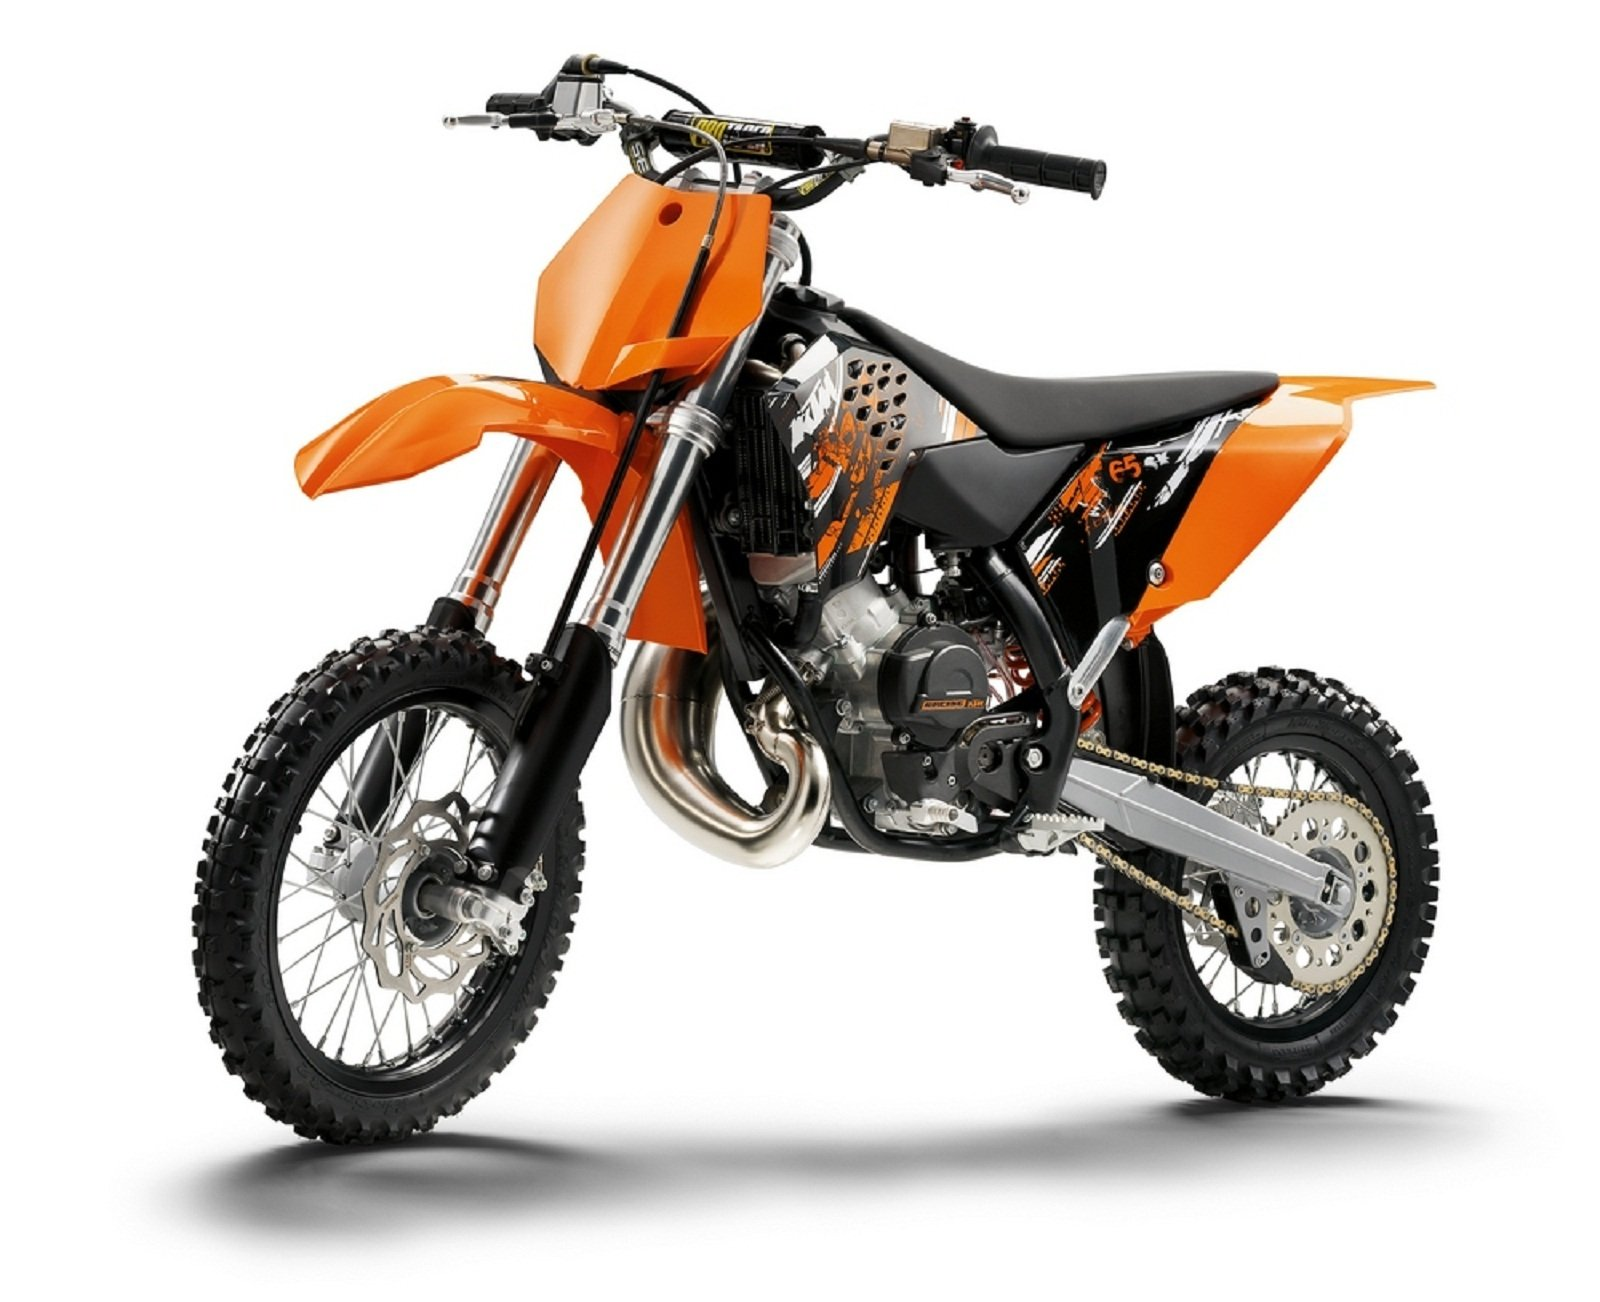 2012 Ktm 65 Sx Picture 434960 Motorcycle Review Top